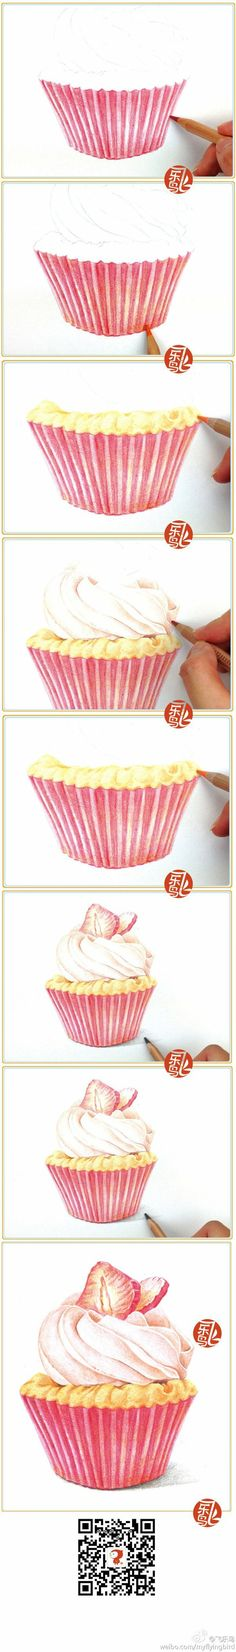 Drawing a cupcake in colored pencil.